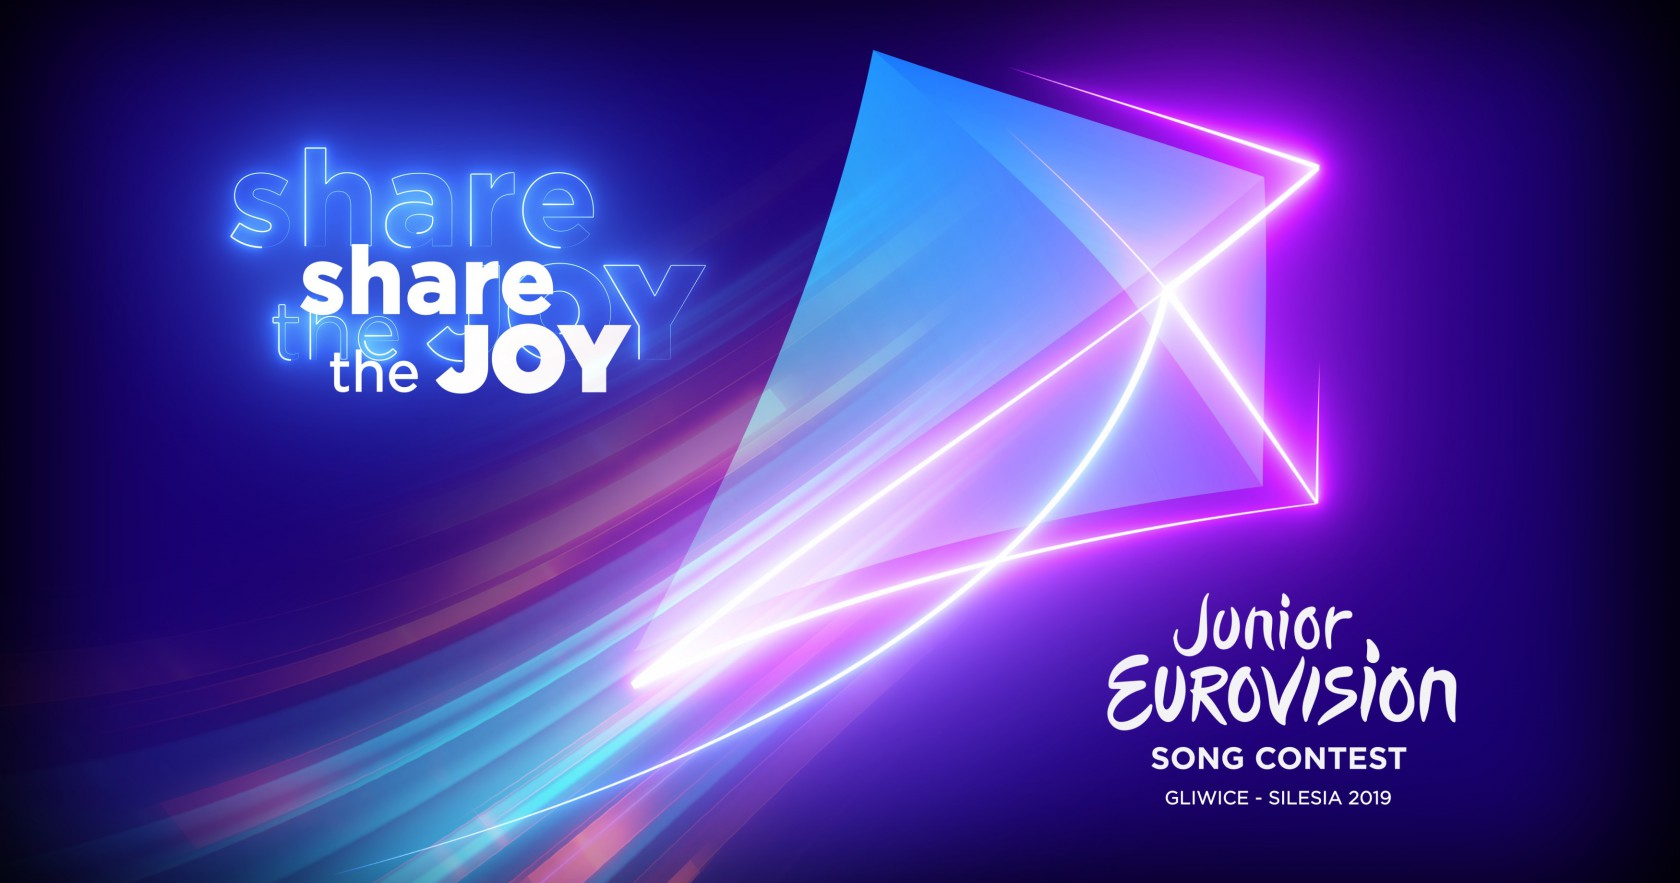 Junior Eurovision 2019: Share the Joy.